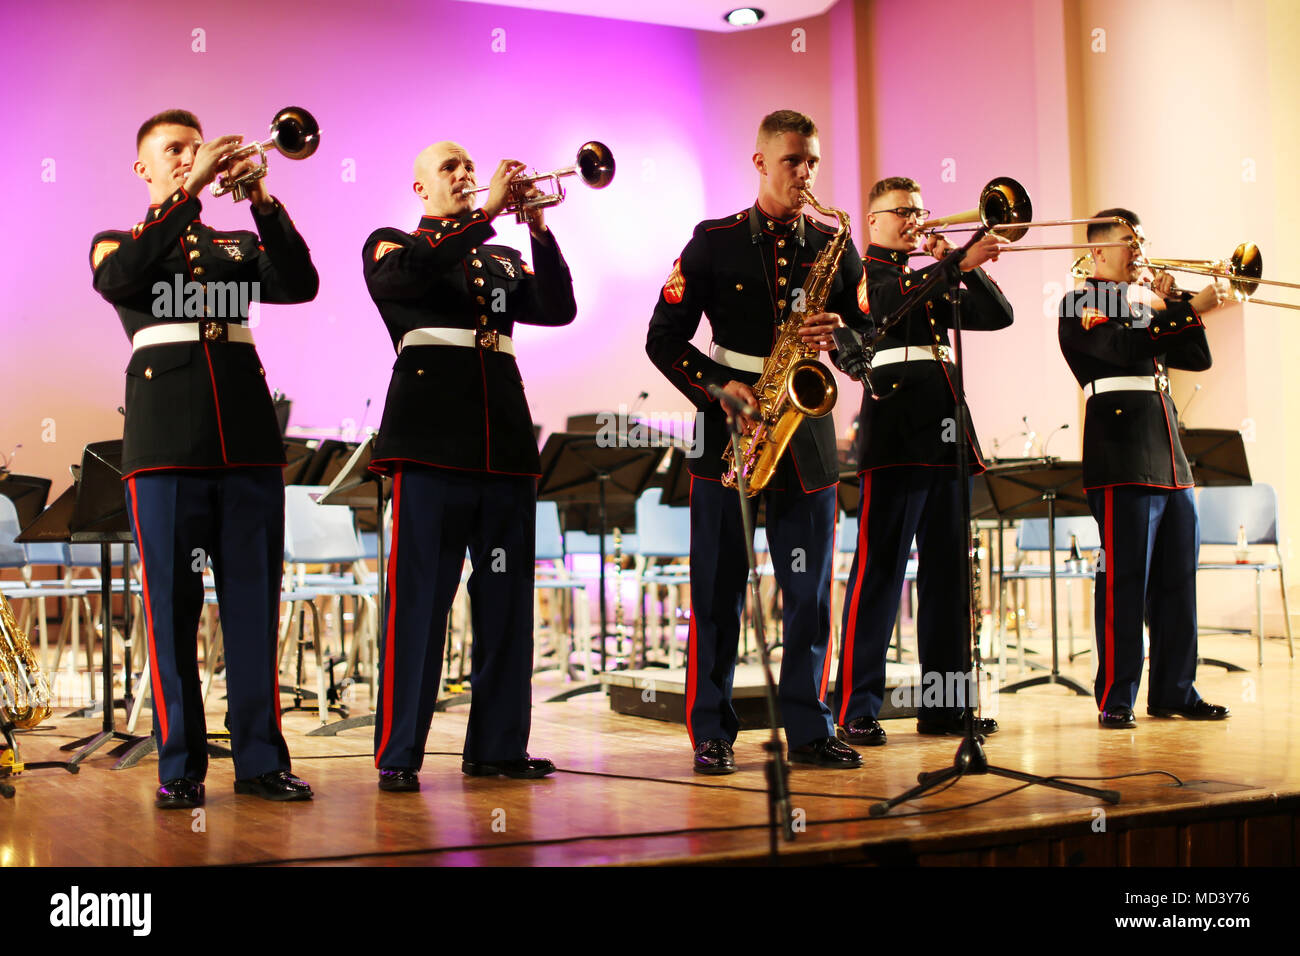 Marines with the 3rd Marine Aircraft Wing's brass band perform at the University of Pittsburgh prior to the Pittsburgh St. Patrick's Day Parade, March 16. The 3rd MAW band's presence at high-visibility events allows positive interaction with the public and assists in recruiting efforts across the country. (U.S. Marine Corps photo by Sgt. David Bickel/Released) Stock Photo